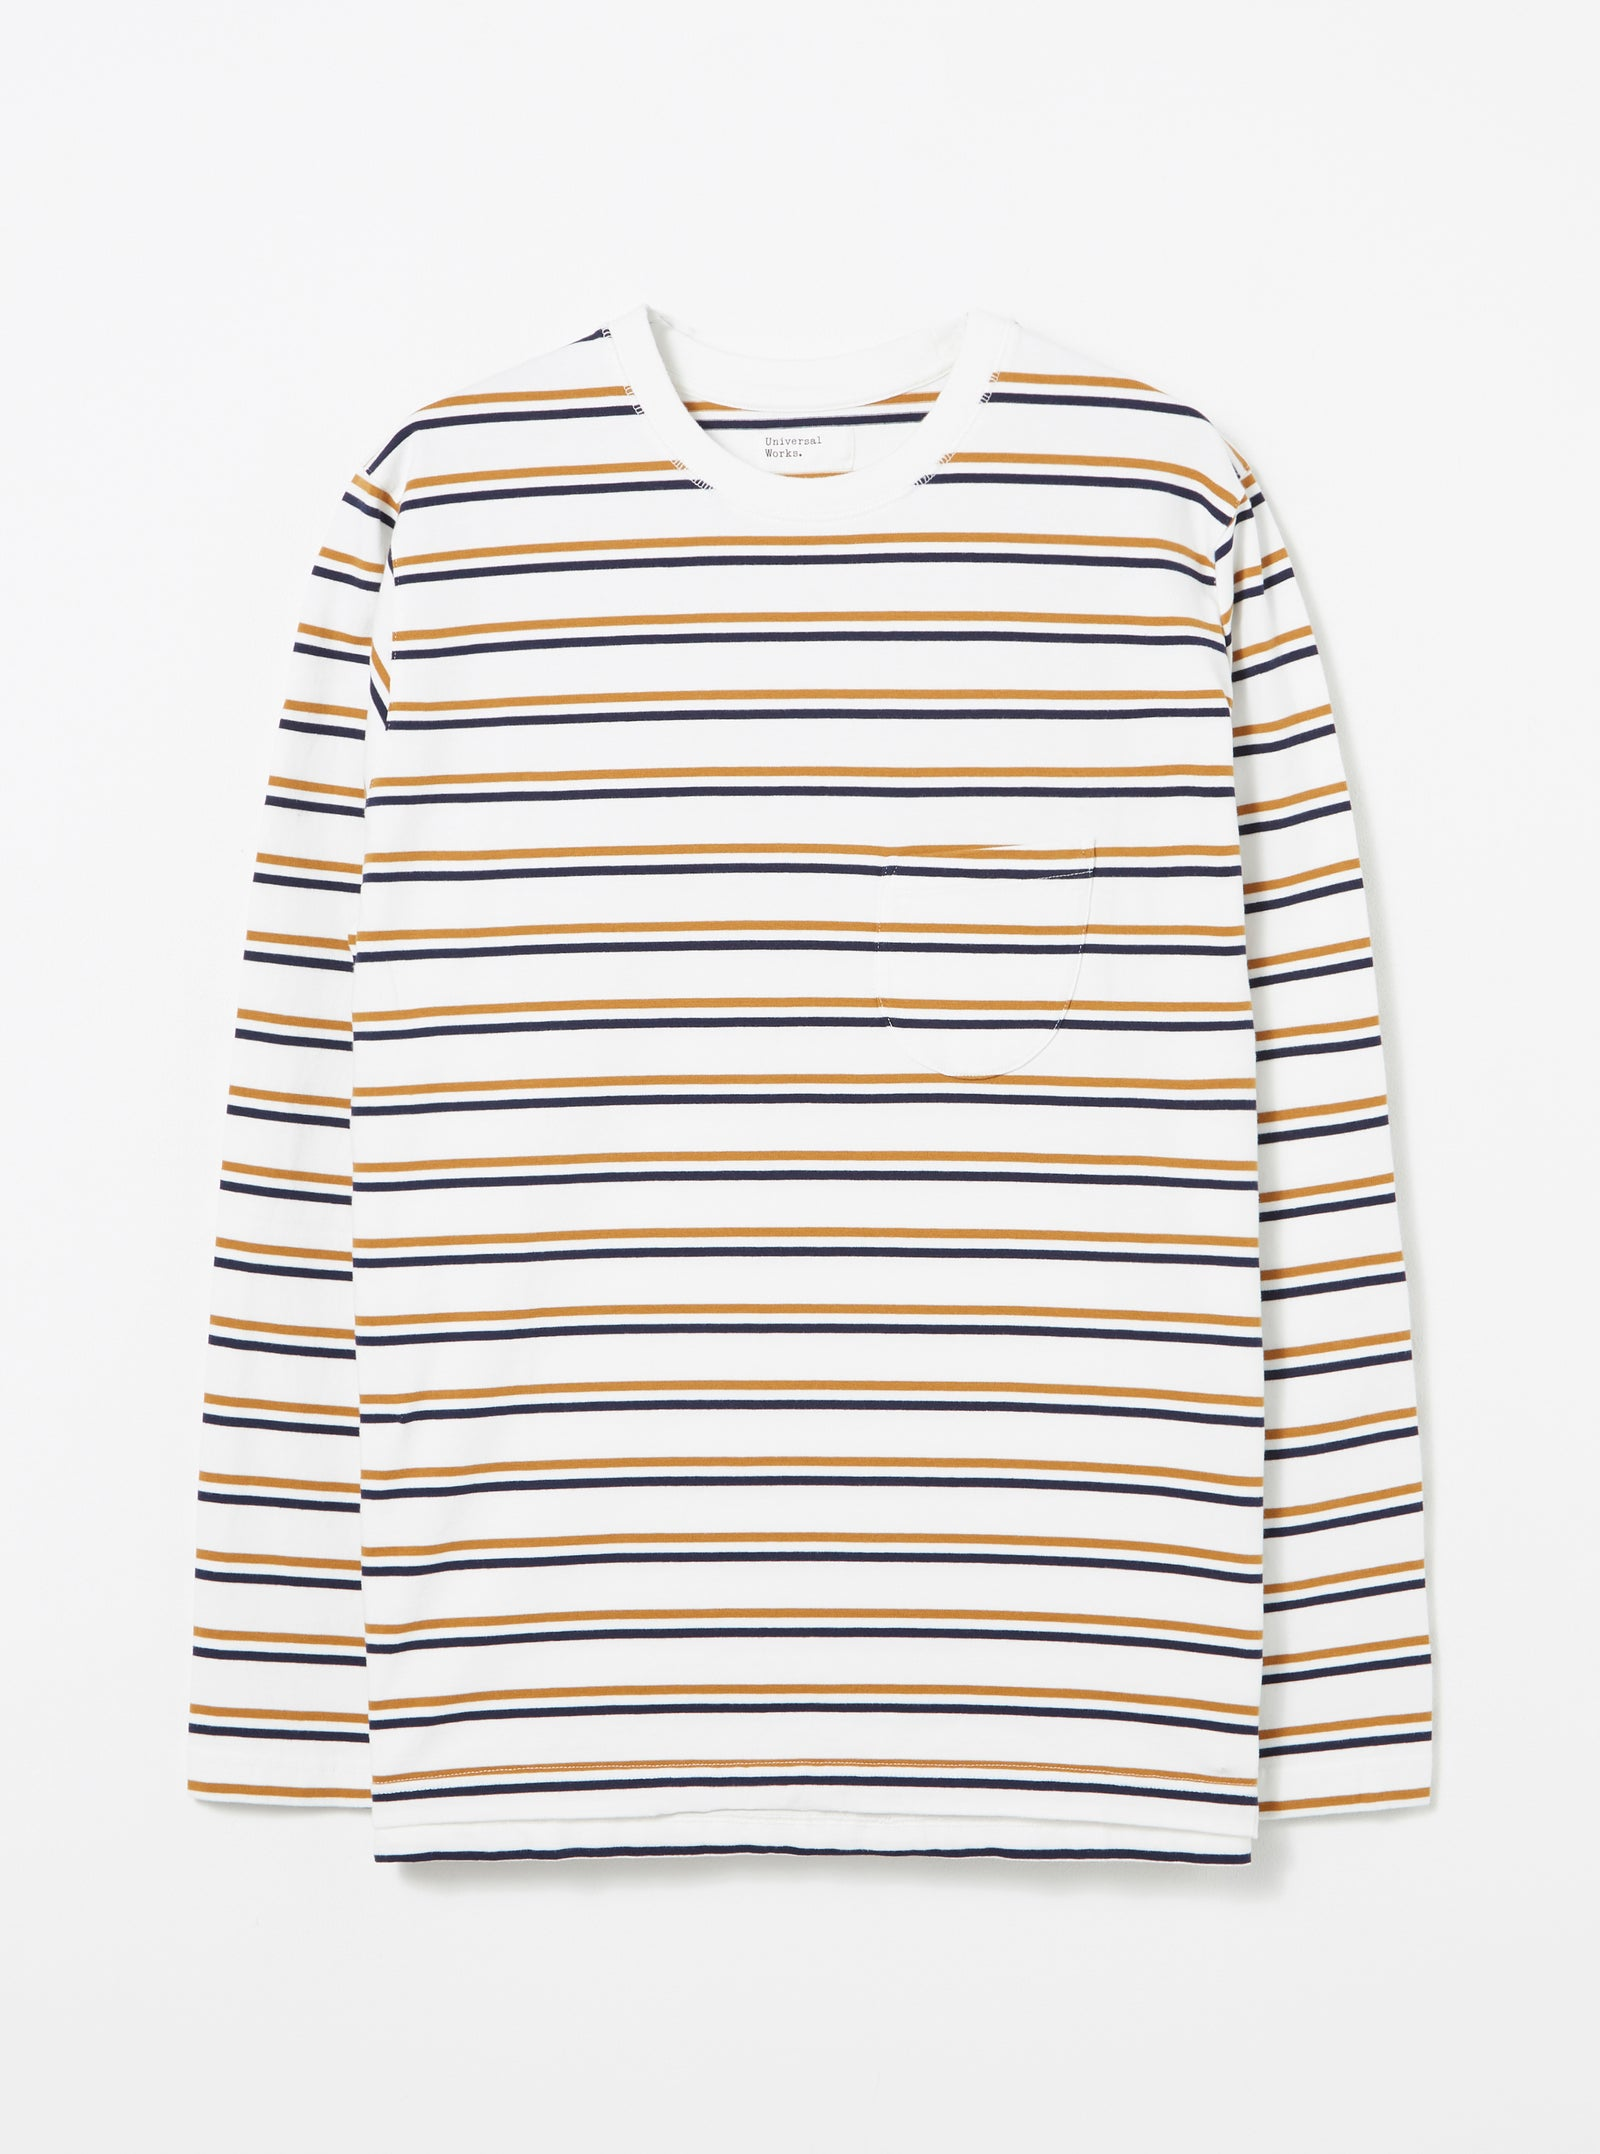 Universal Works L/S Tee in Ecru Narrow Stripe Jersey